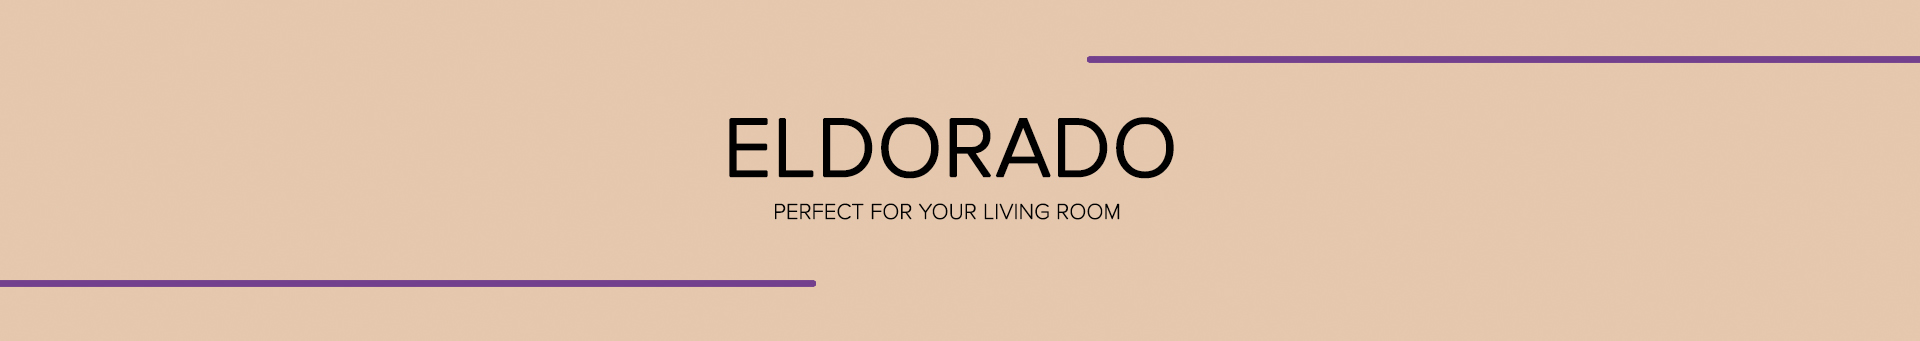 Eldorado Entertainment Center